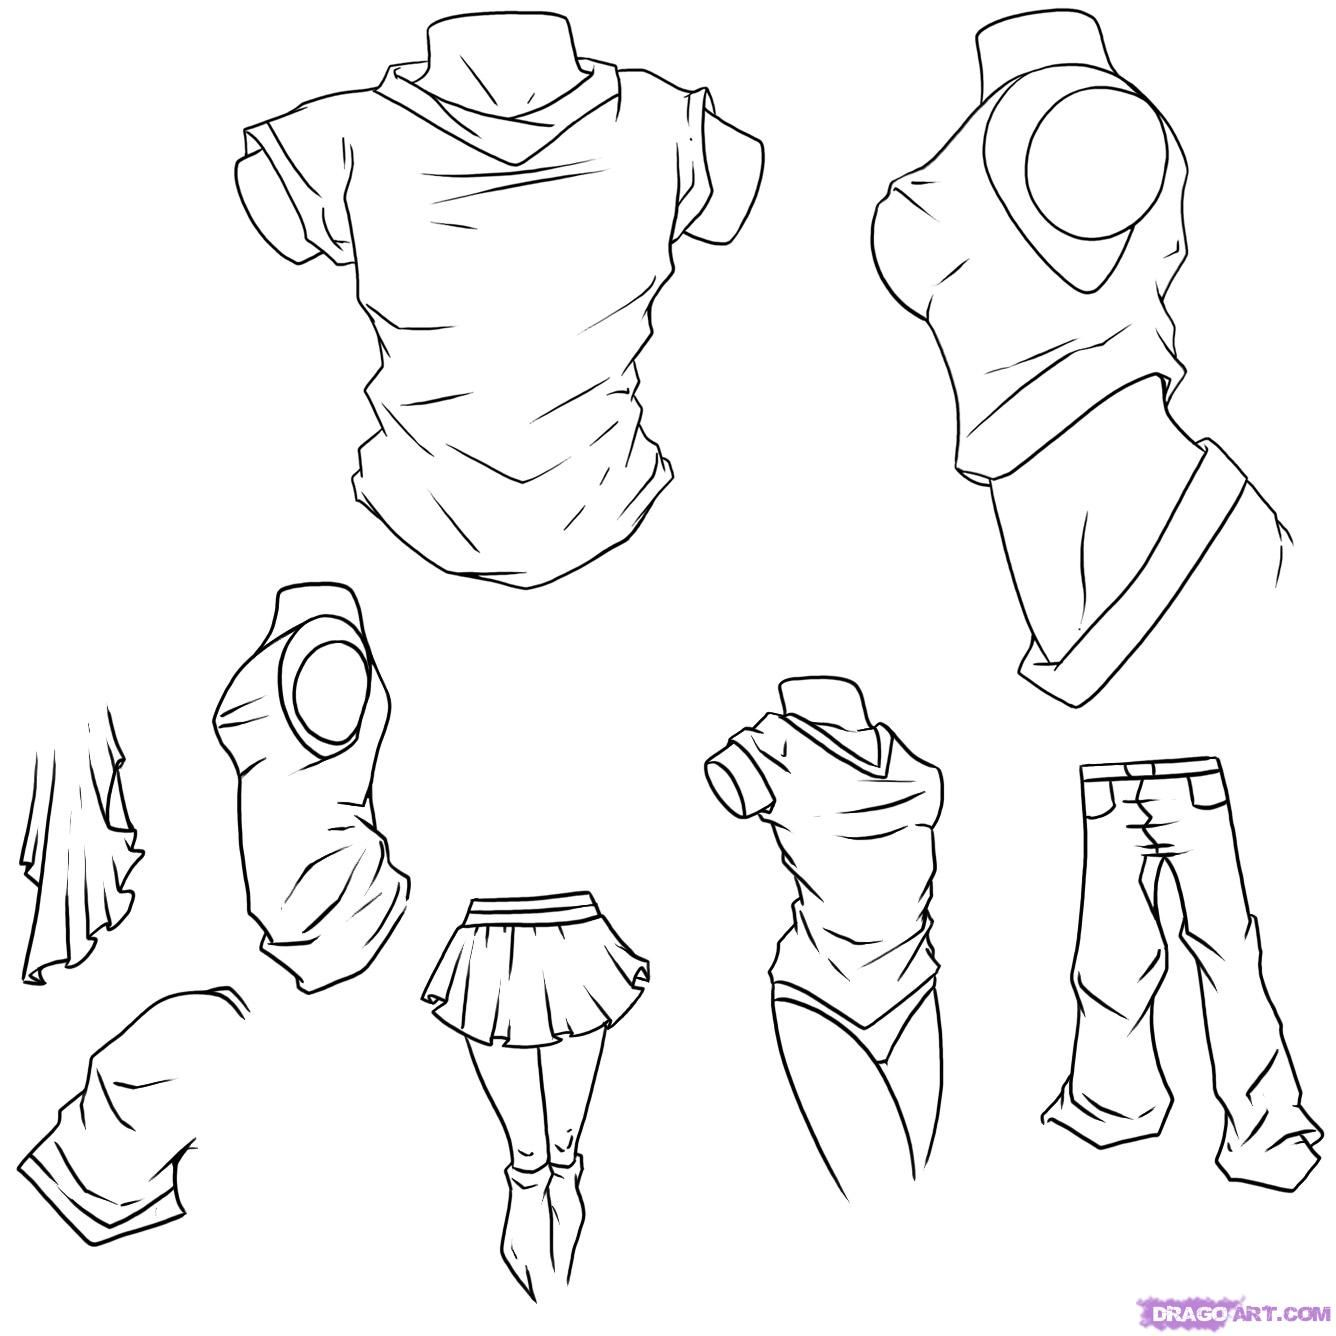 How to draw fantasy anime how to draw anime clothes step by step anime people anime draw